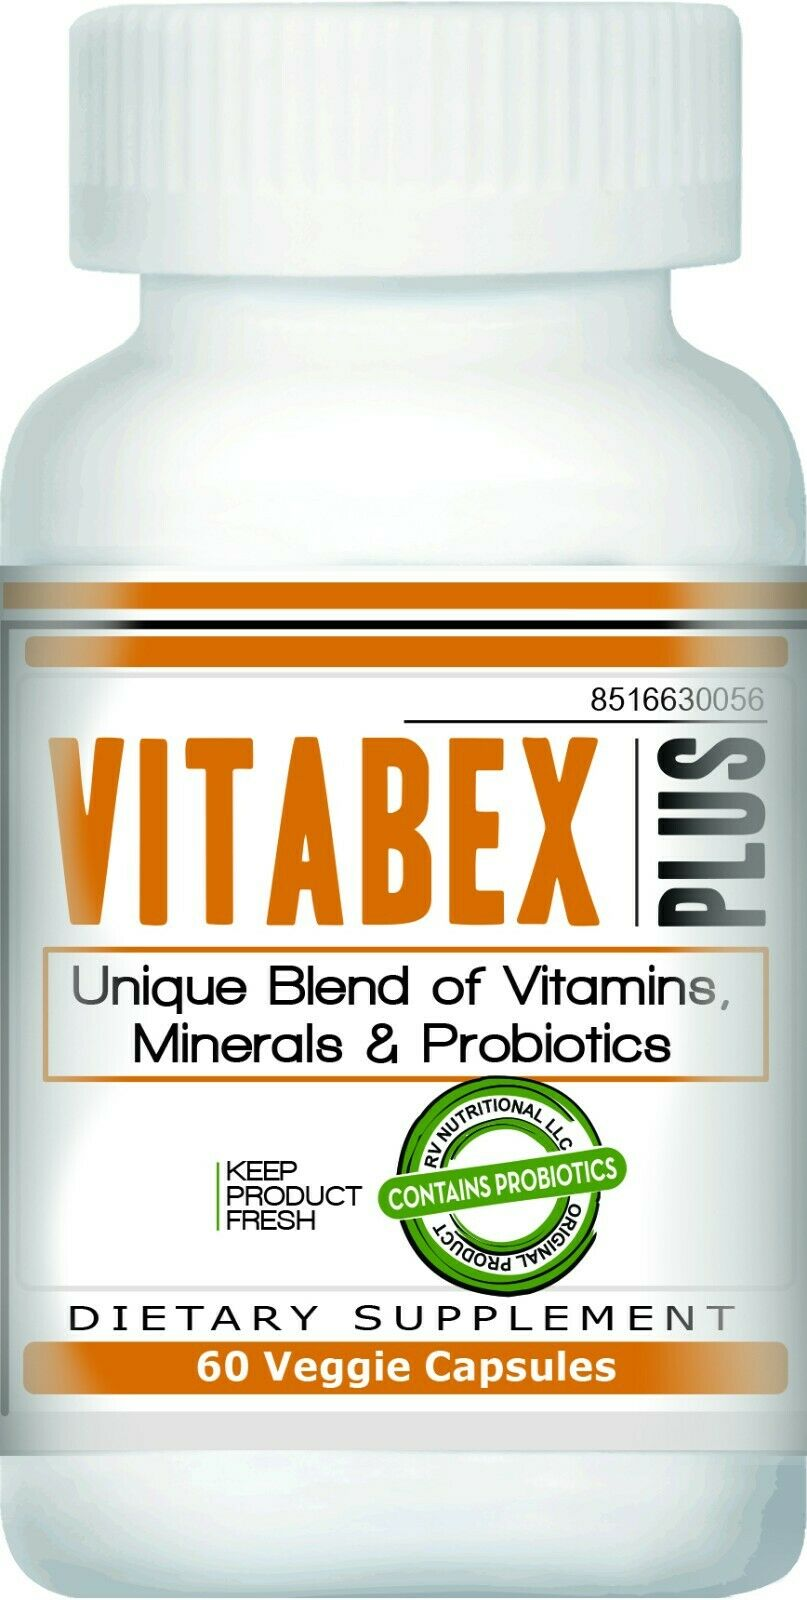 Vitabex - Multivitamin/Probiotics | 180 VCaps | Exp. 6/2023 (3 BOTTLES)